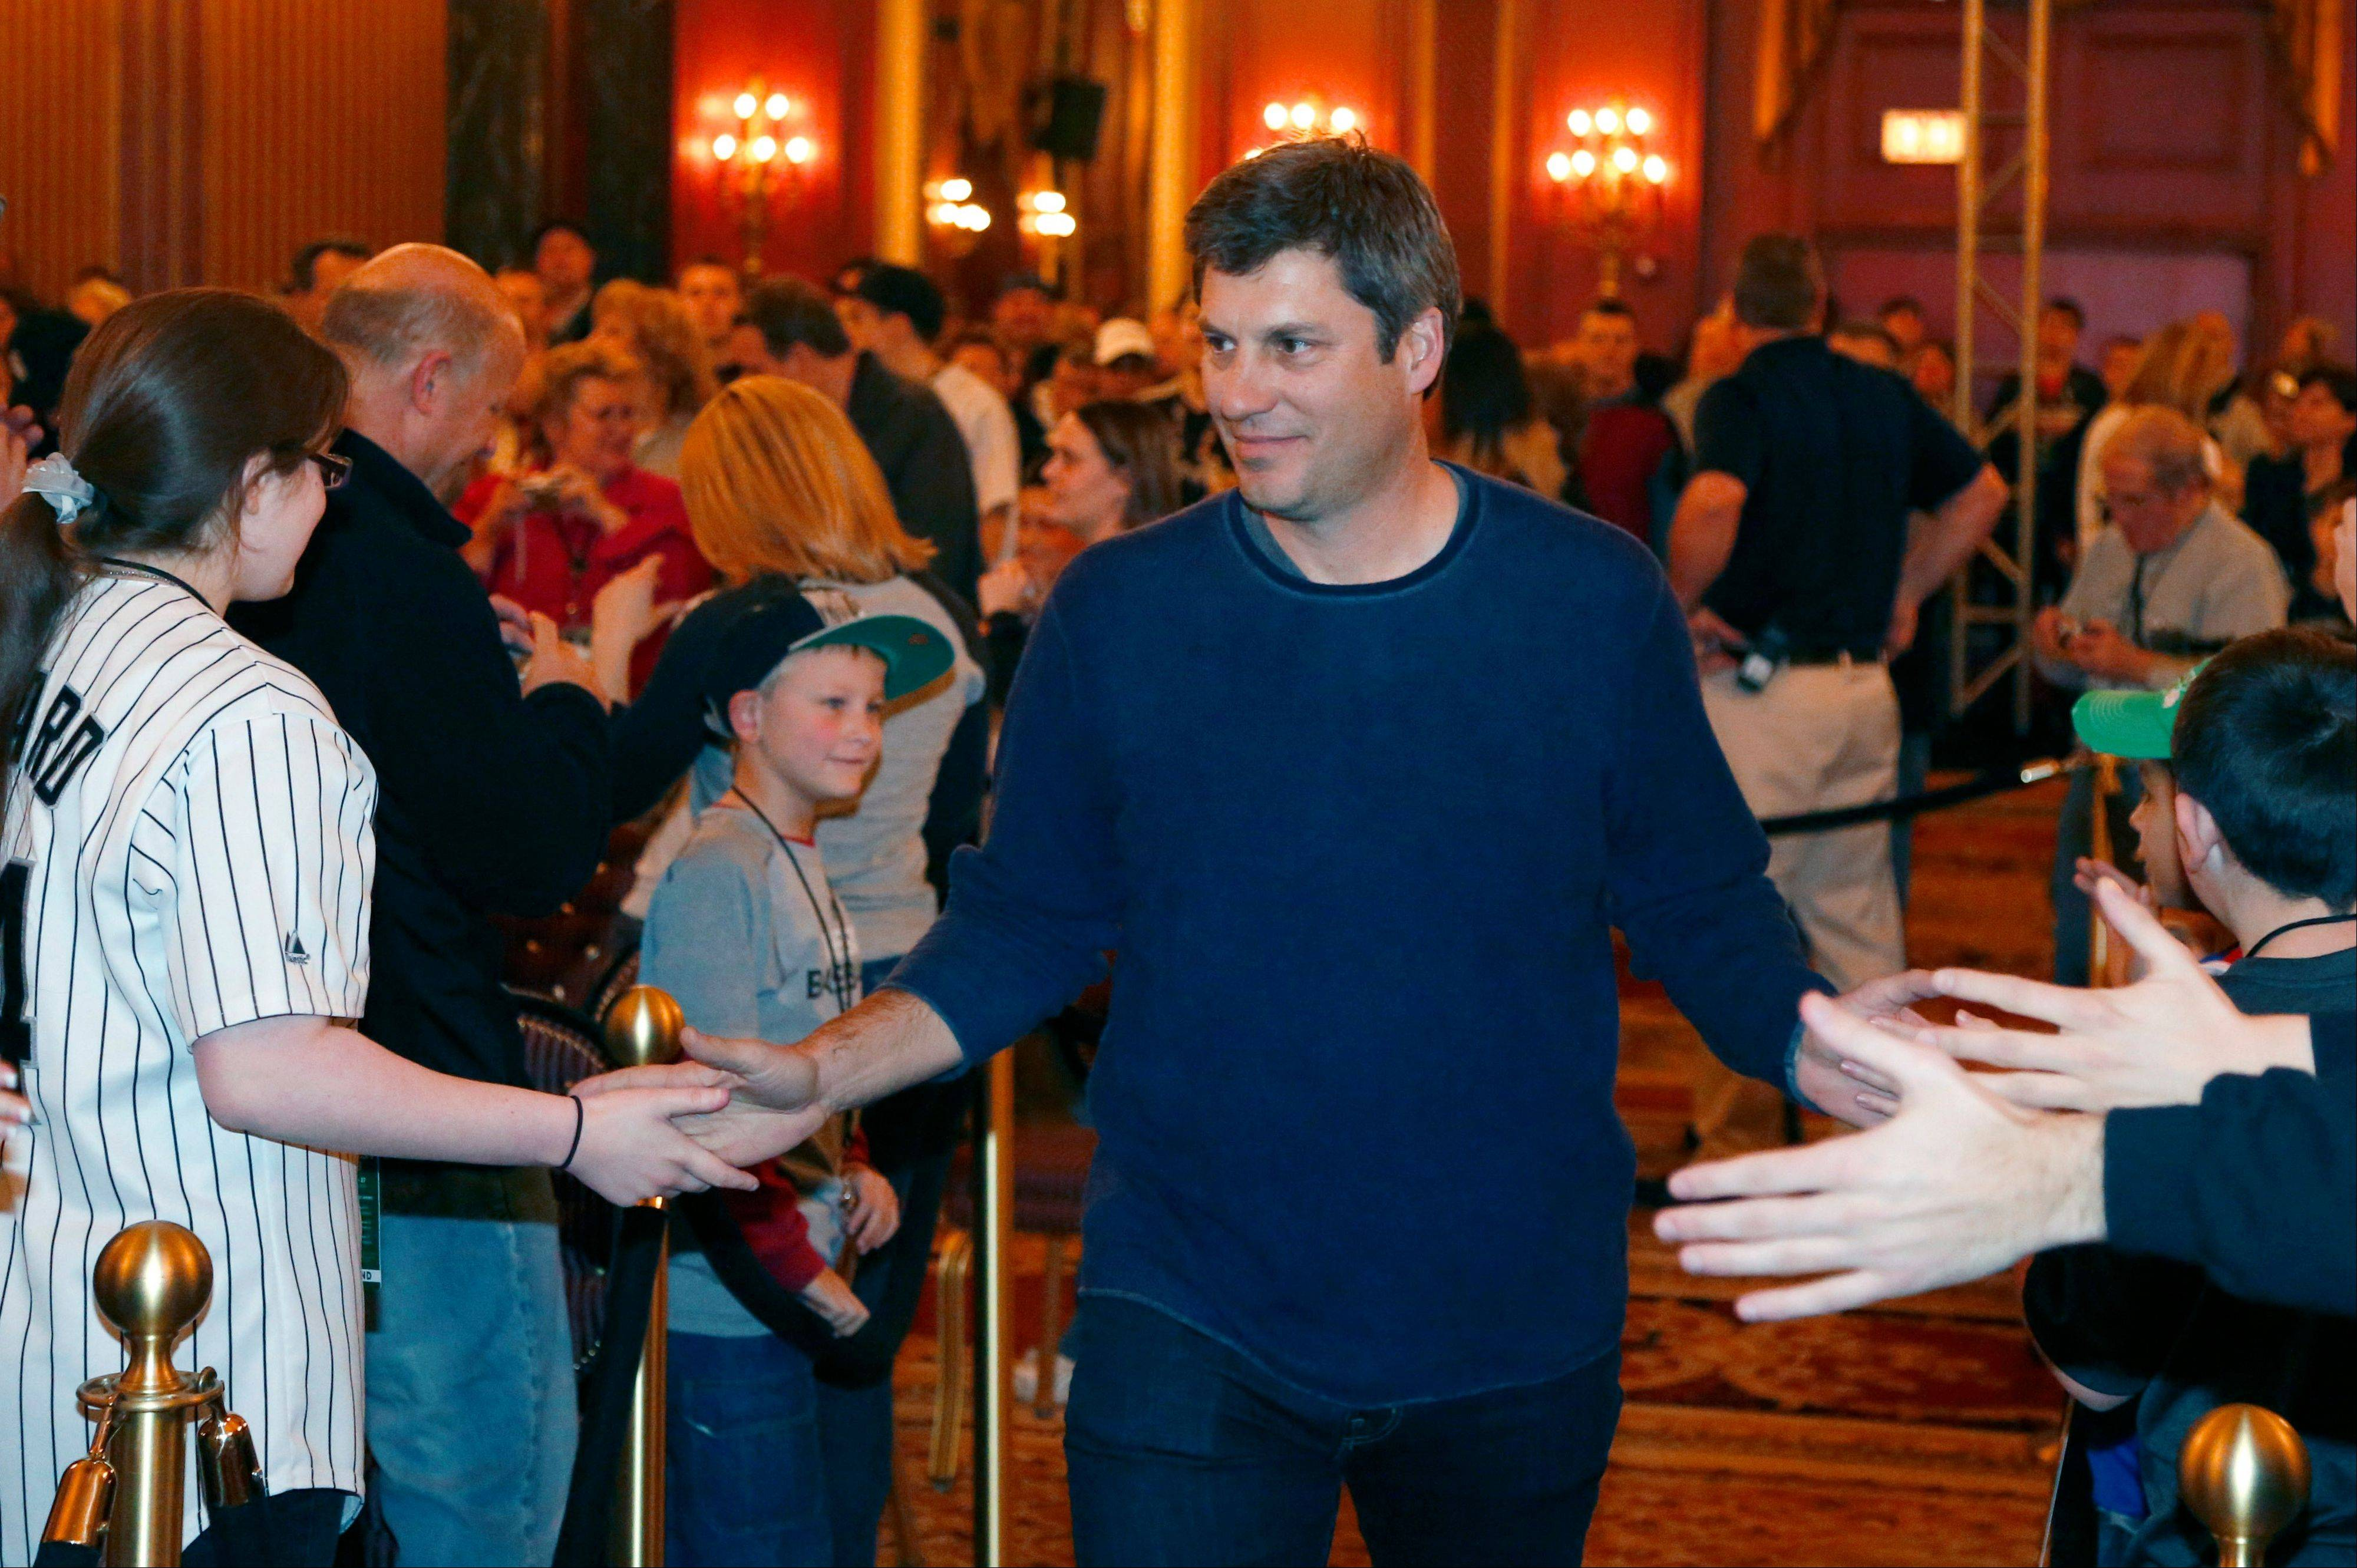 White Sox manager Robin Ventura slaps hands with fans as he is introduced during SoxFest on Friday.